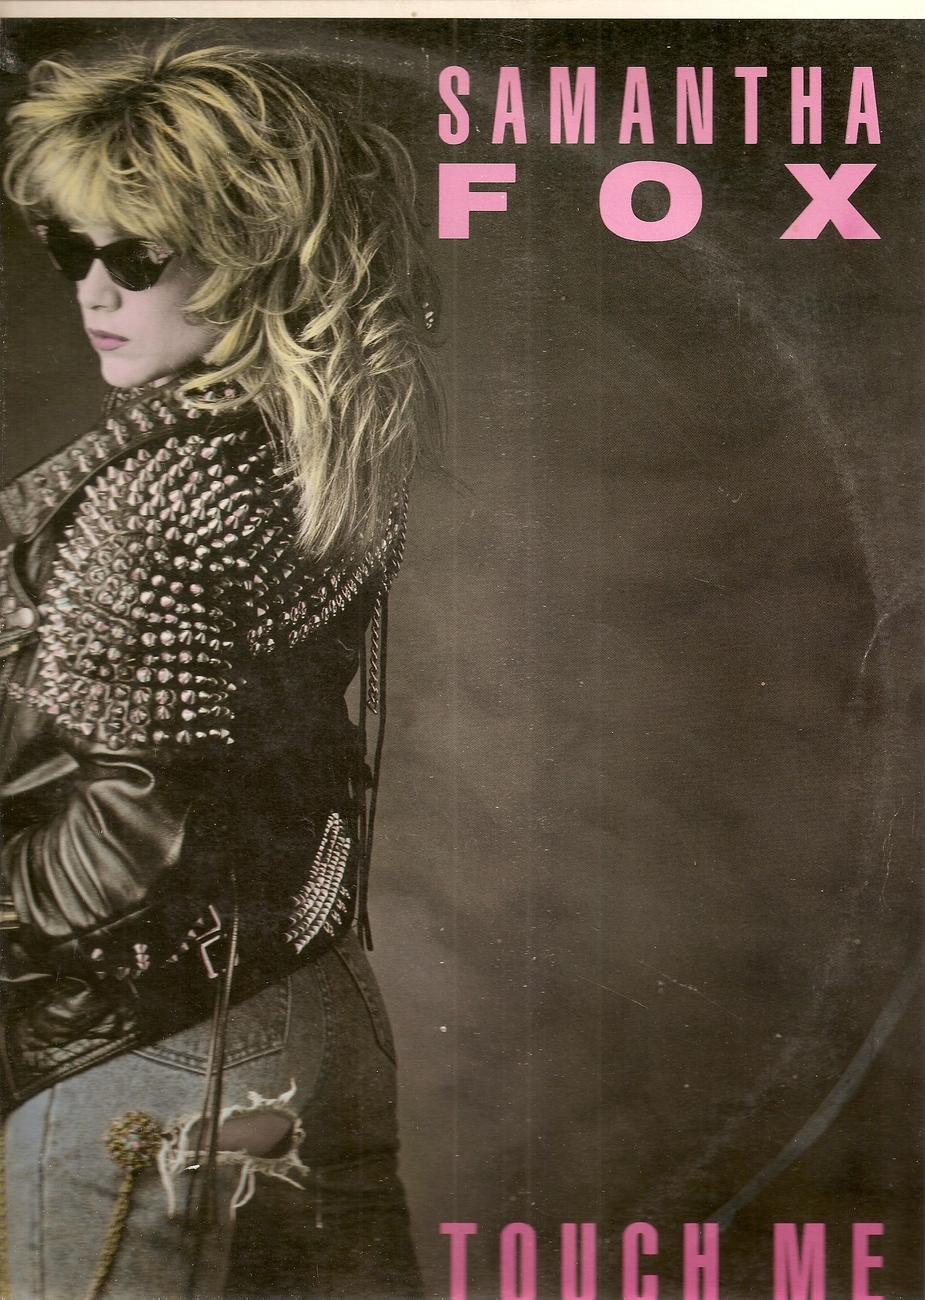 LP--Fox, Samantha Touch Me